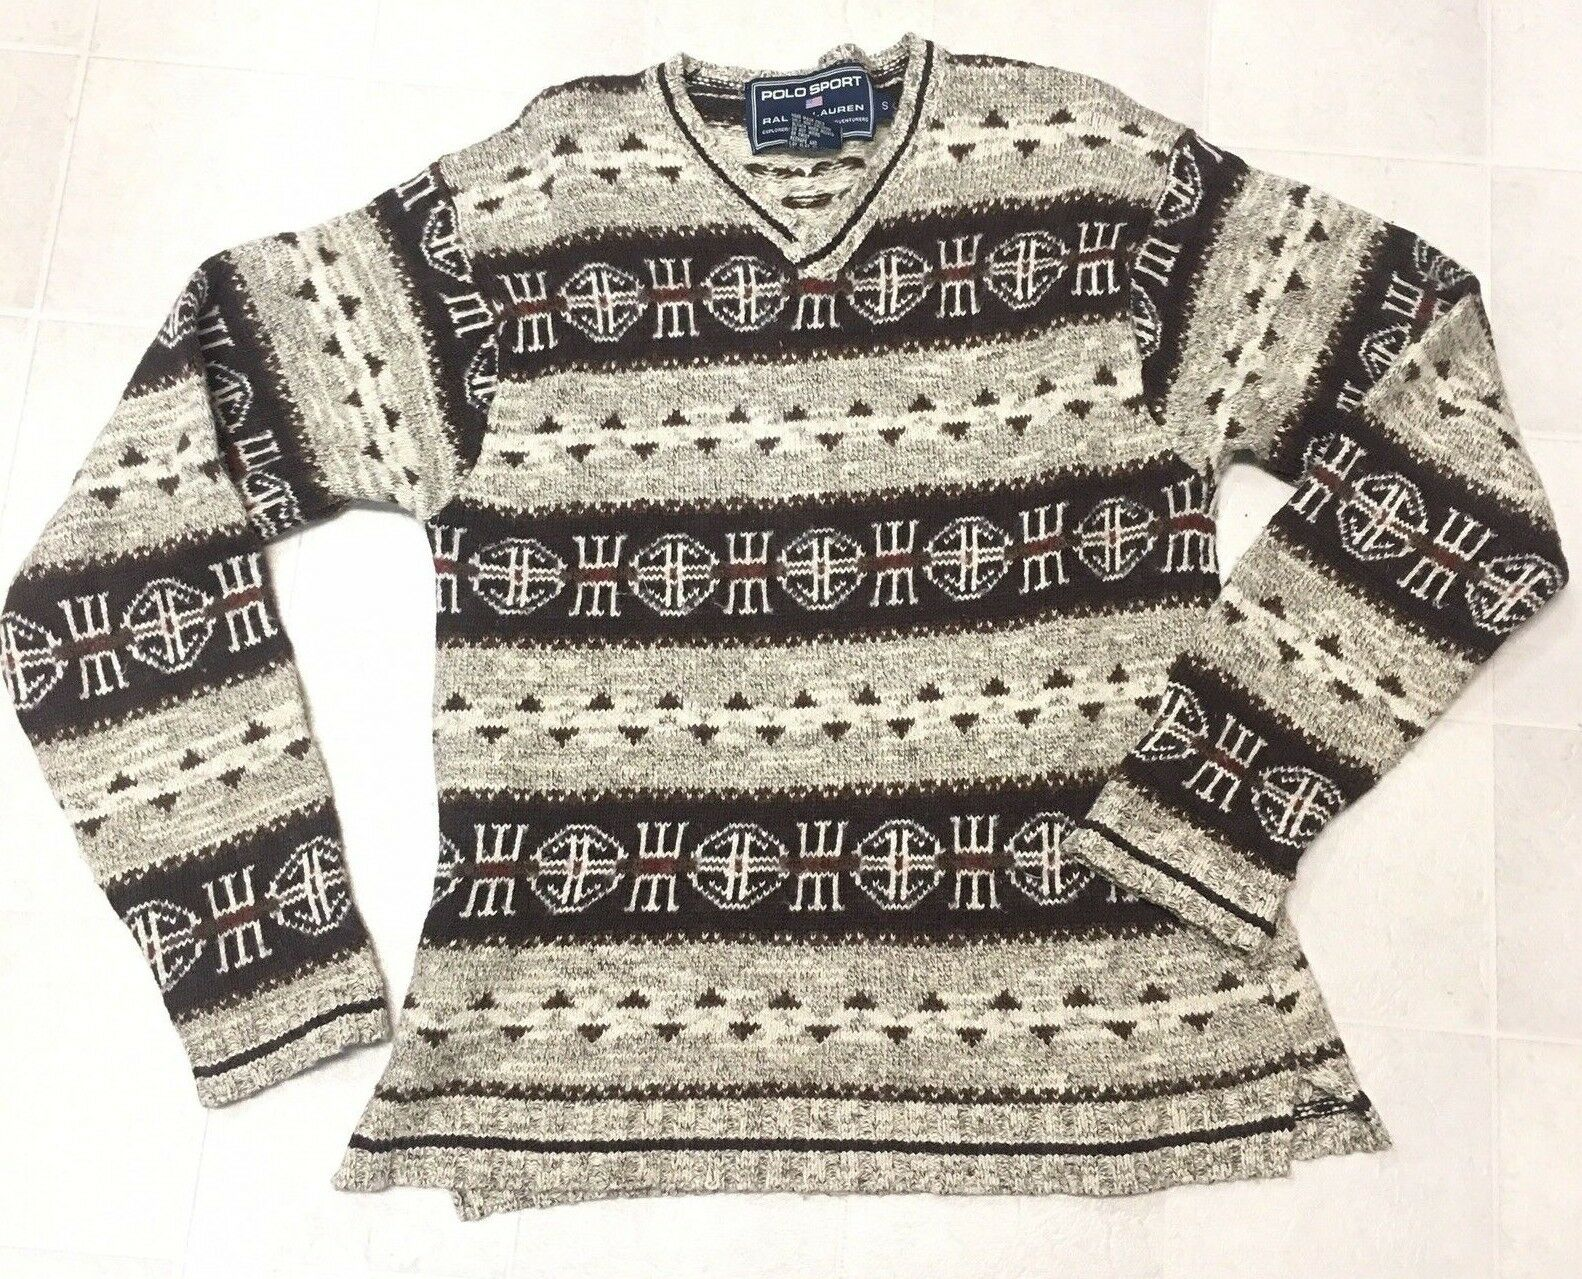 Ralph Lauren Polo Sport Vintage Sweater Aztec Indian Art Weave Linen Wool Silk